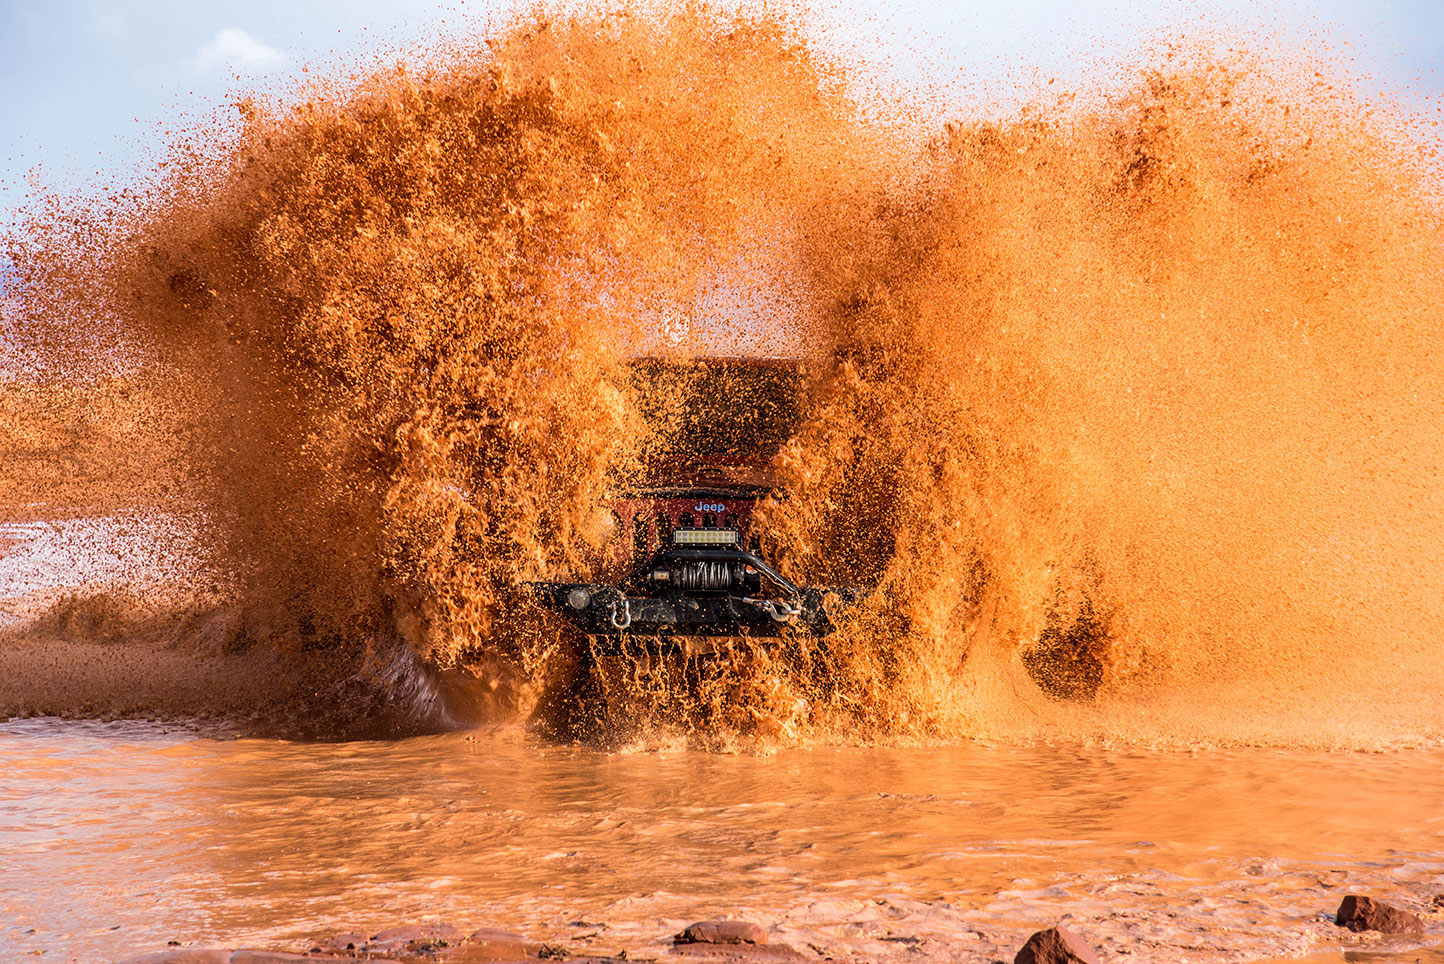 Jeep Wrangler, Off Road, Mud, Sand Dunes, Sand Hollow Recreation Area, Automobile, Adventure Lifestyle Photographer, Daniel Britton